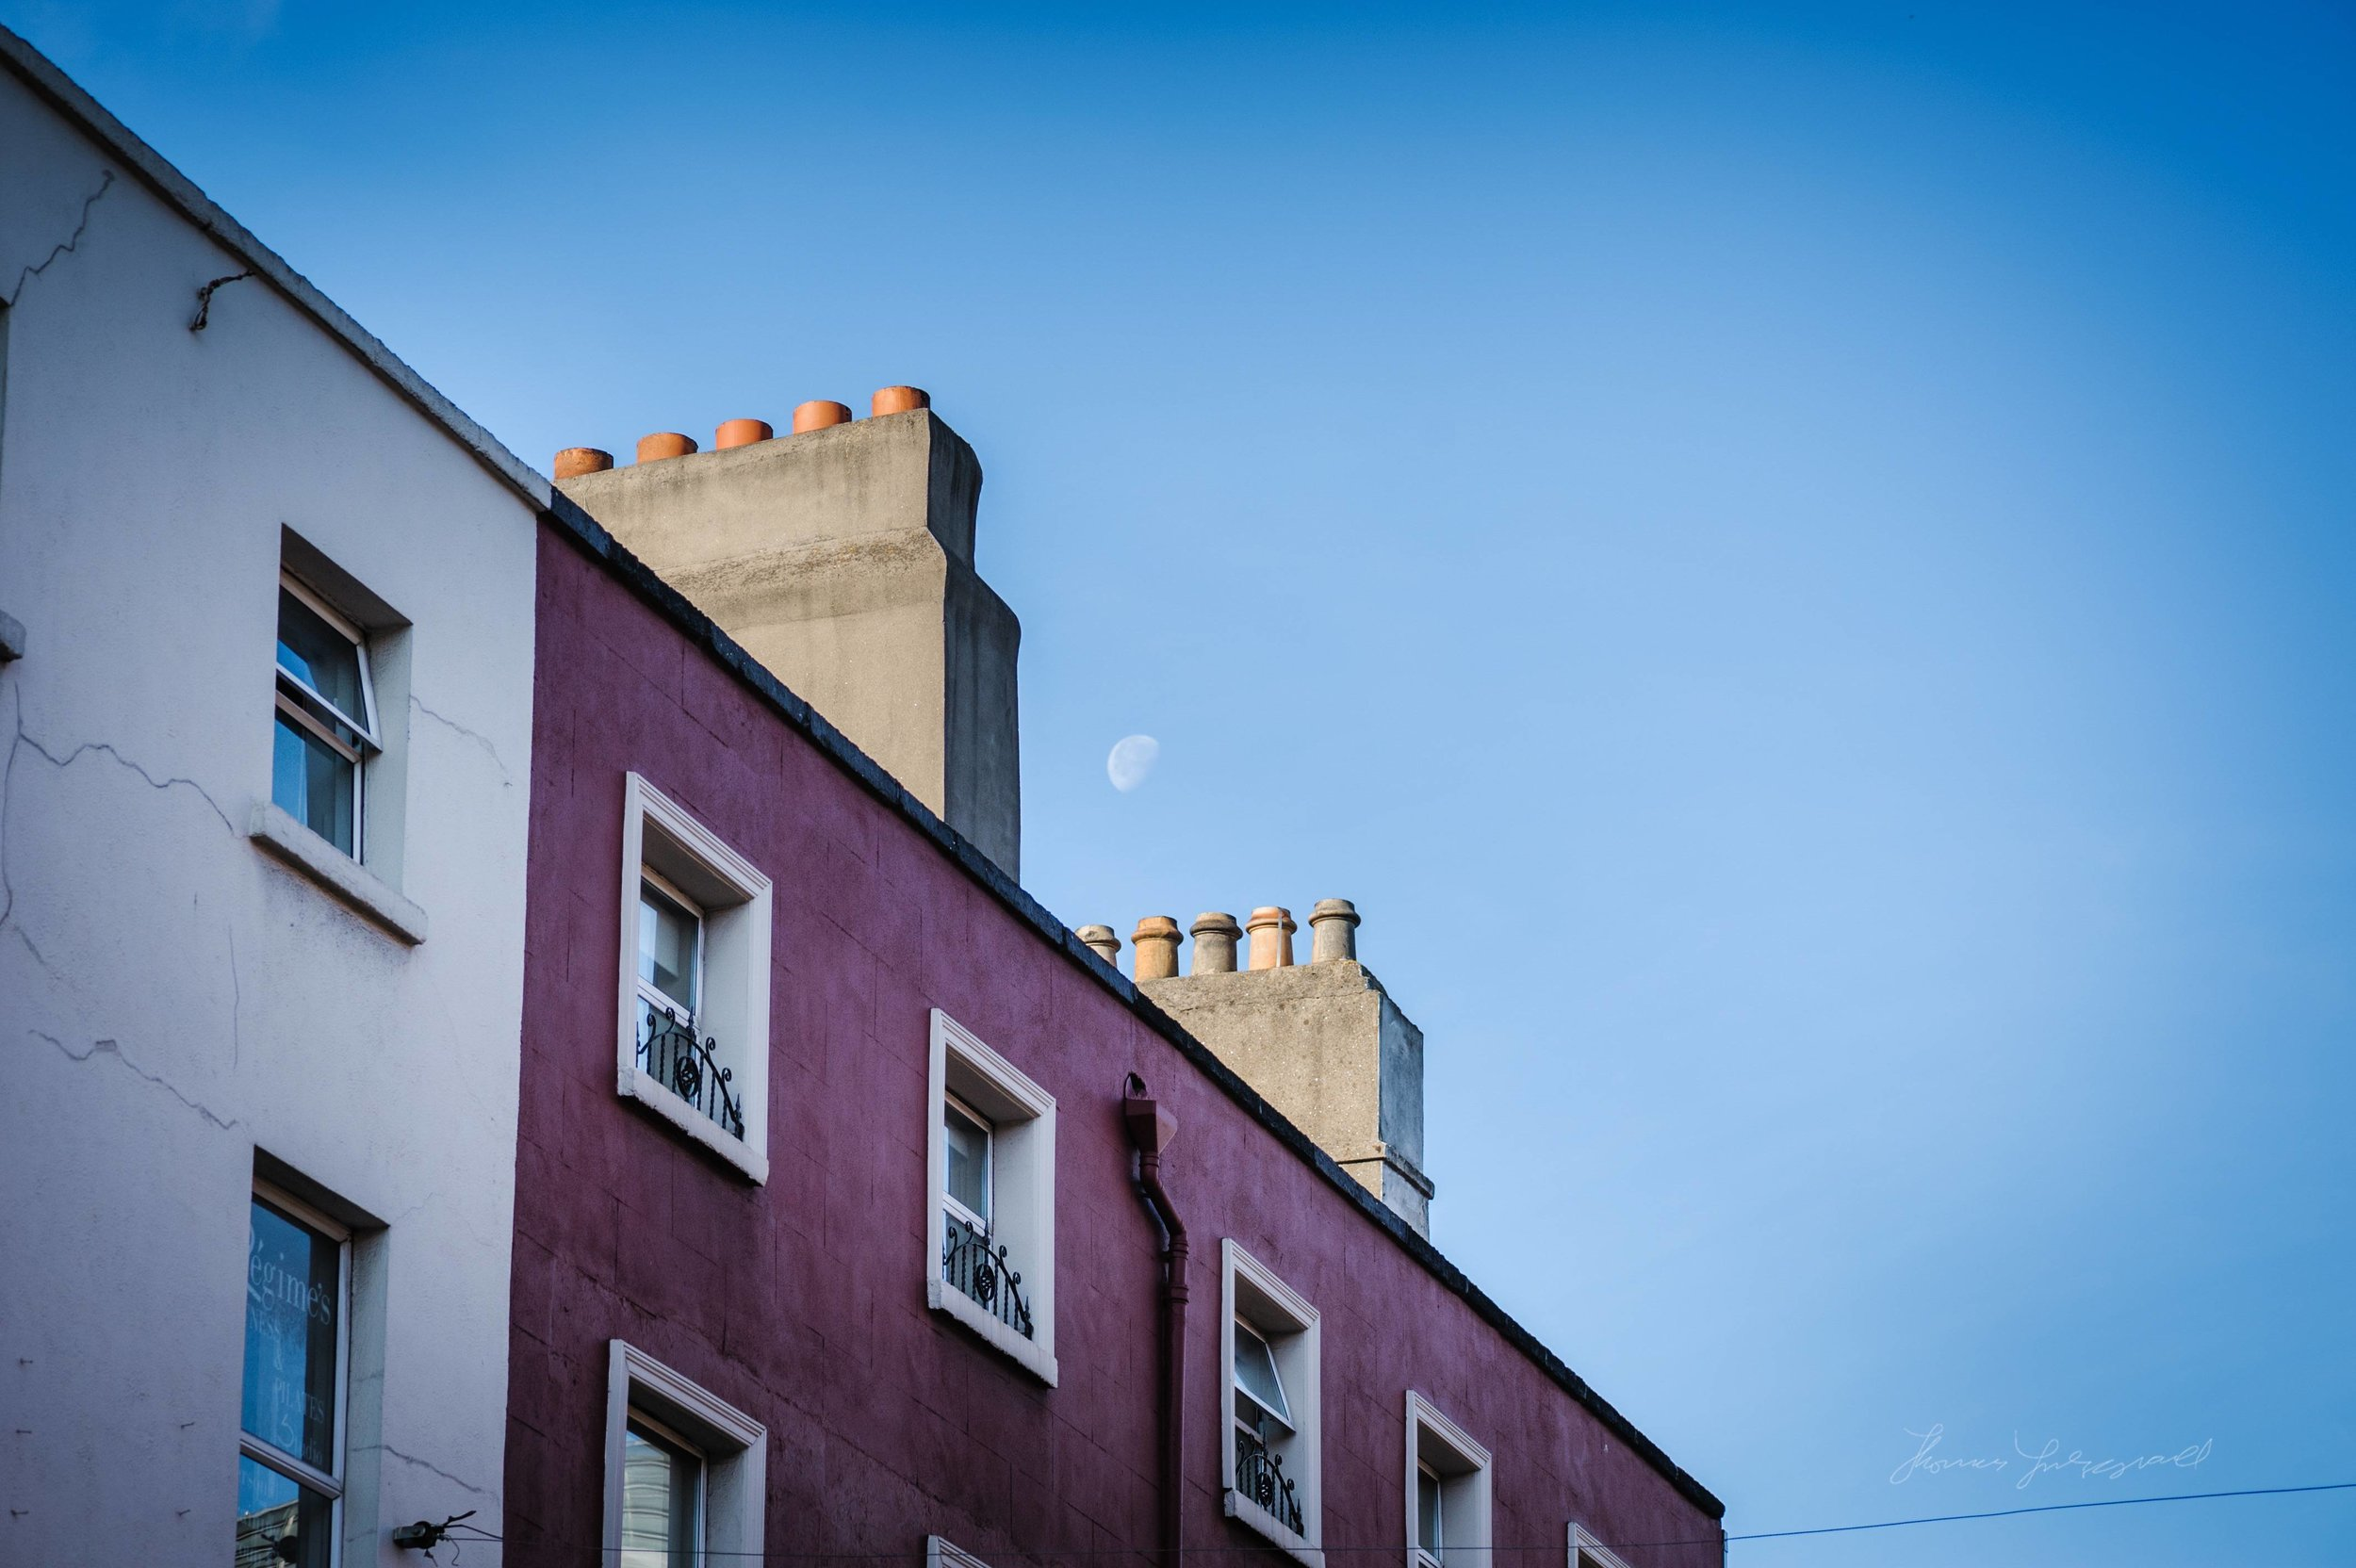 Streets-of-Dublin-Gallery13.jpg